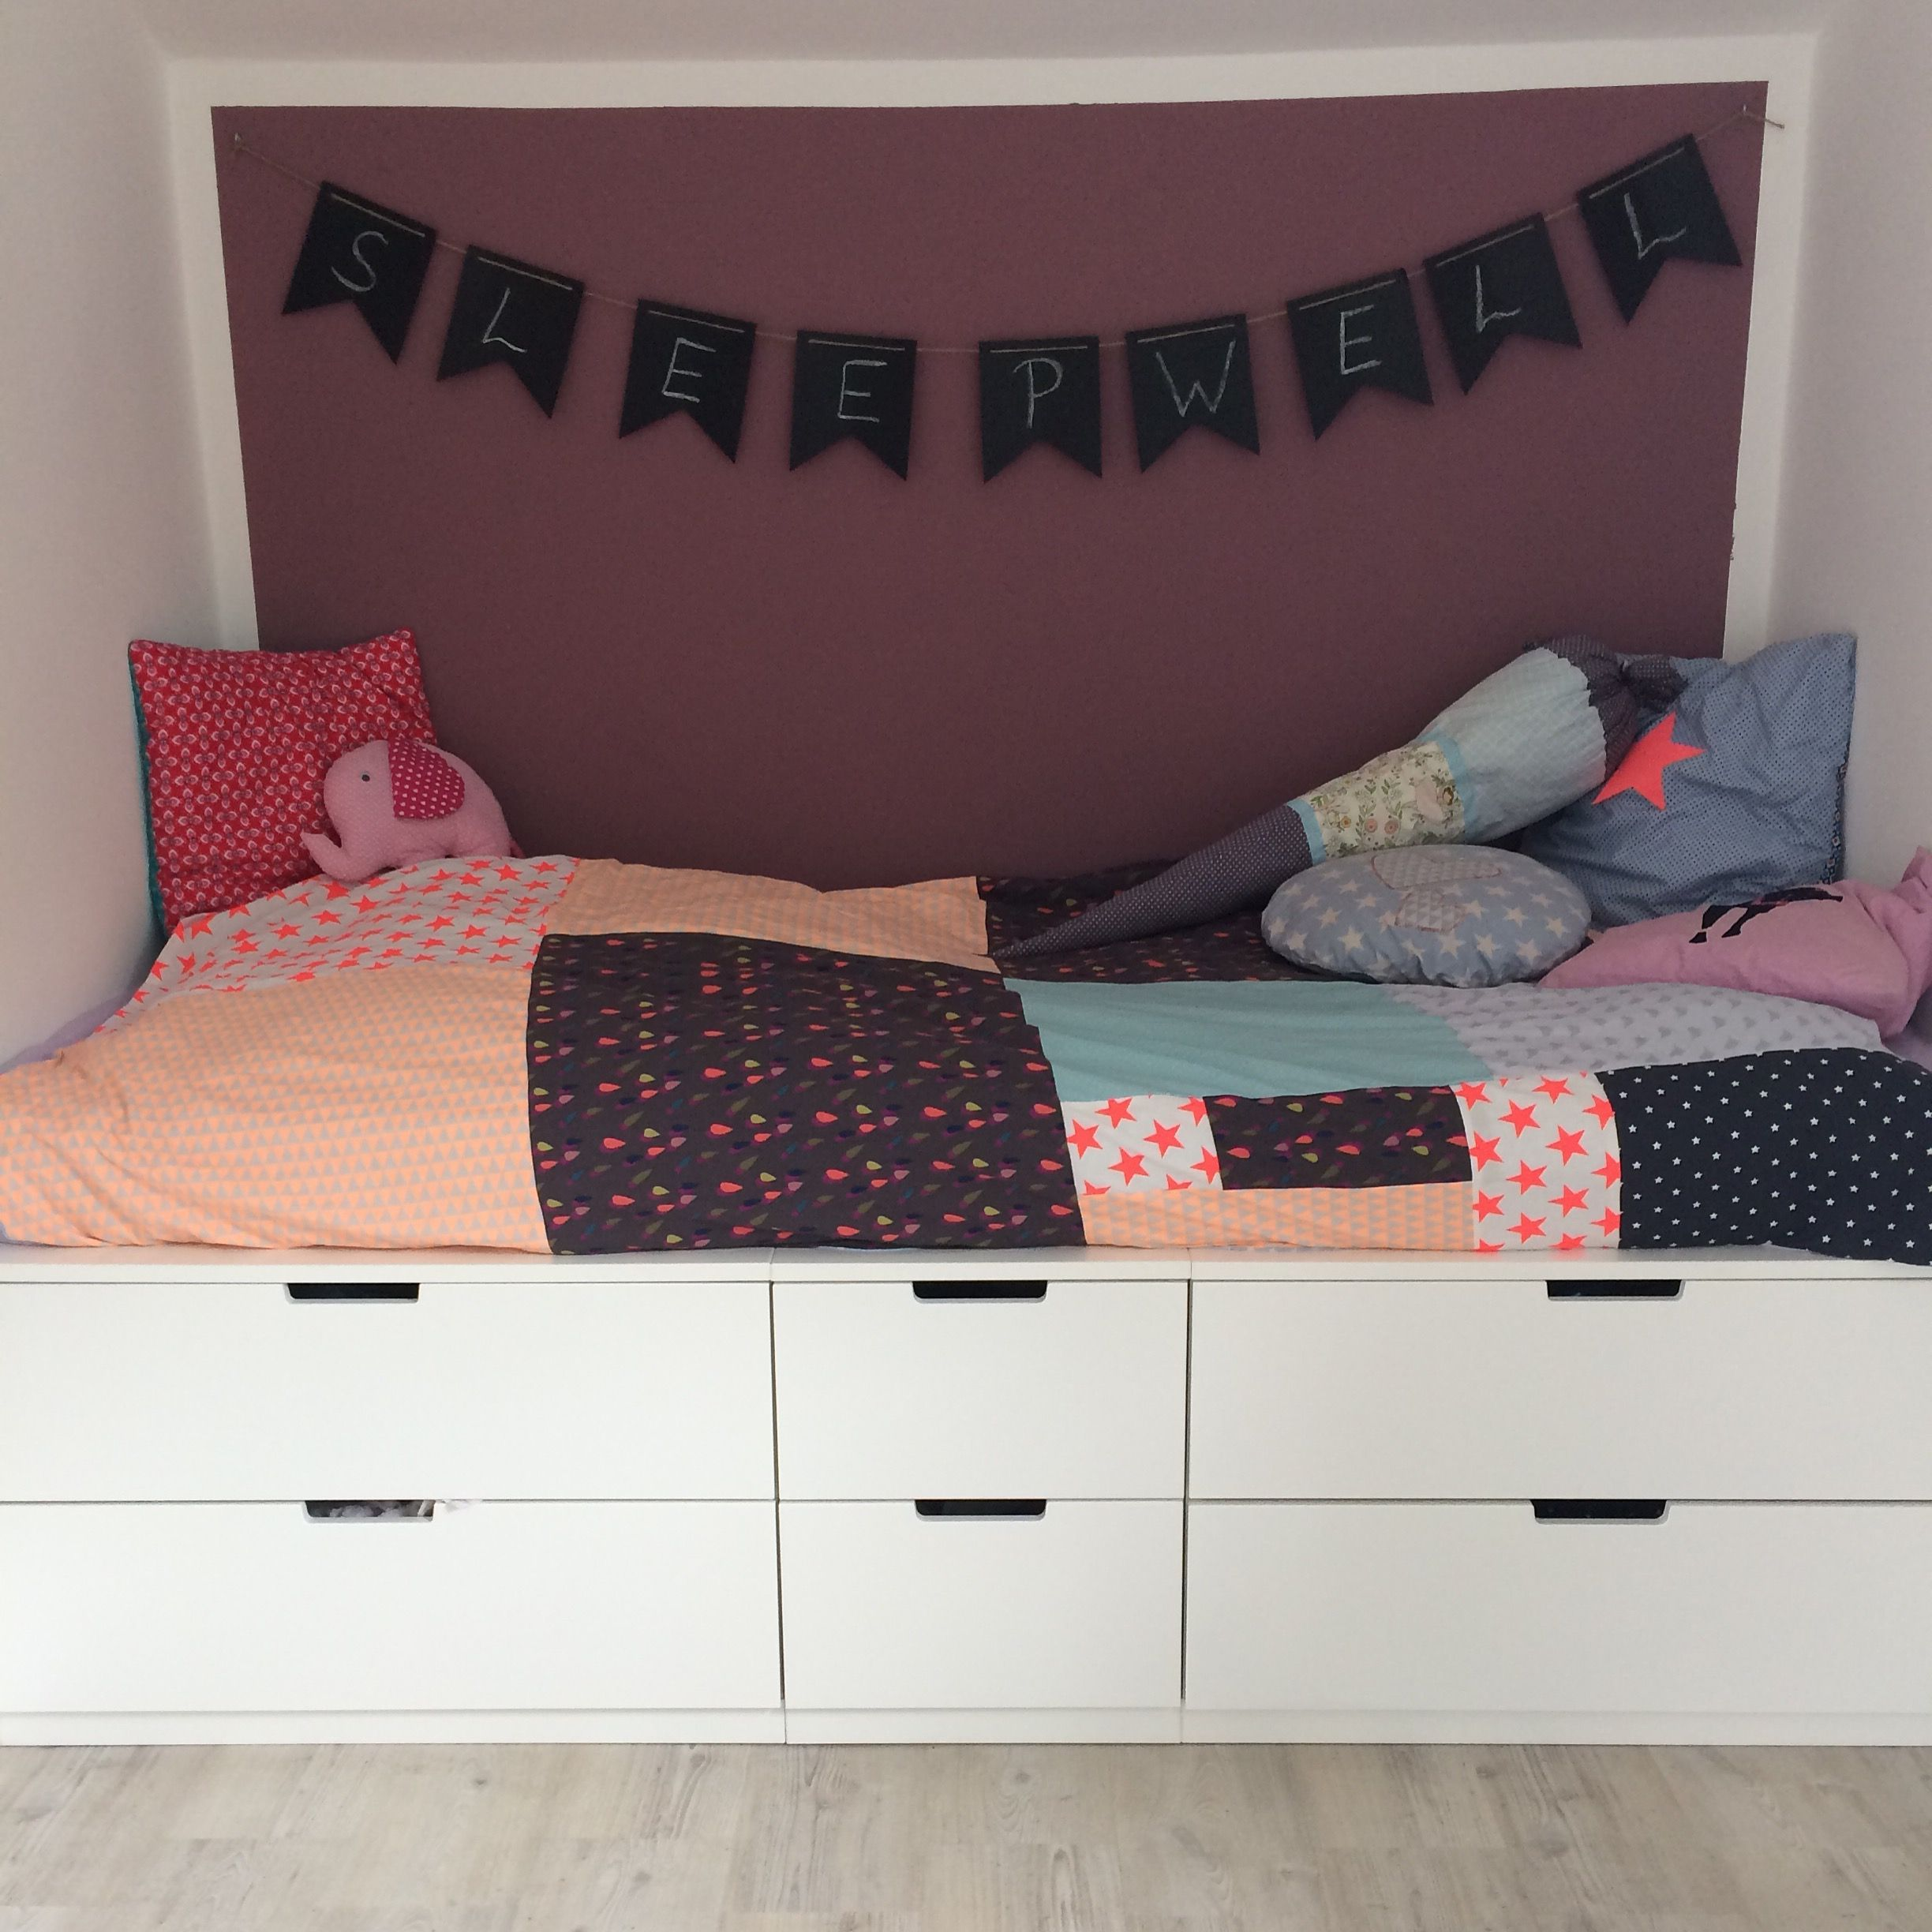 Bett Auf Nordli Kommoden Ikeahacks Ikea Bed Ikea Bed Hack Box Room Bedroom Ideas